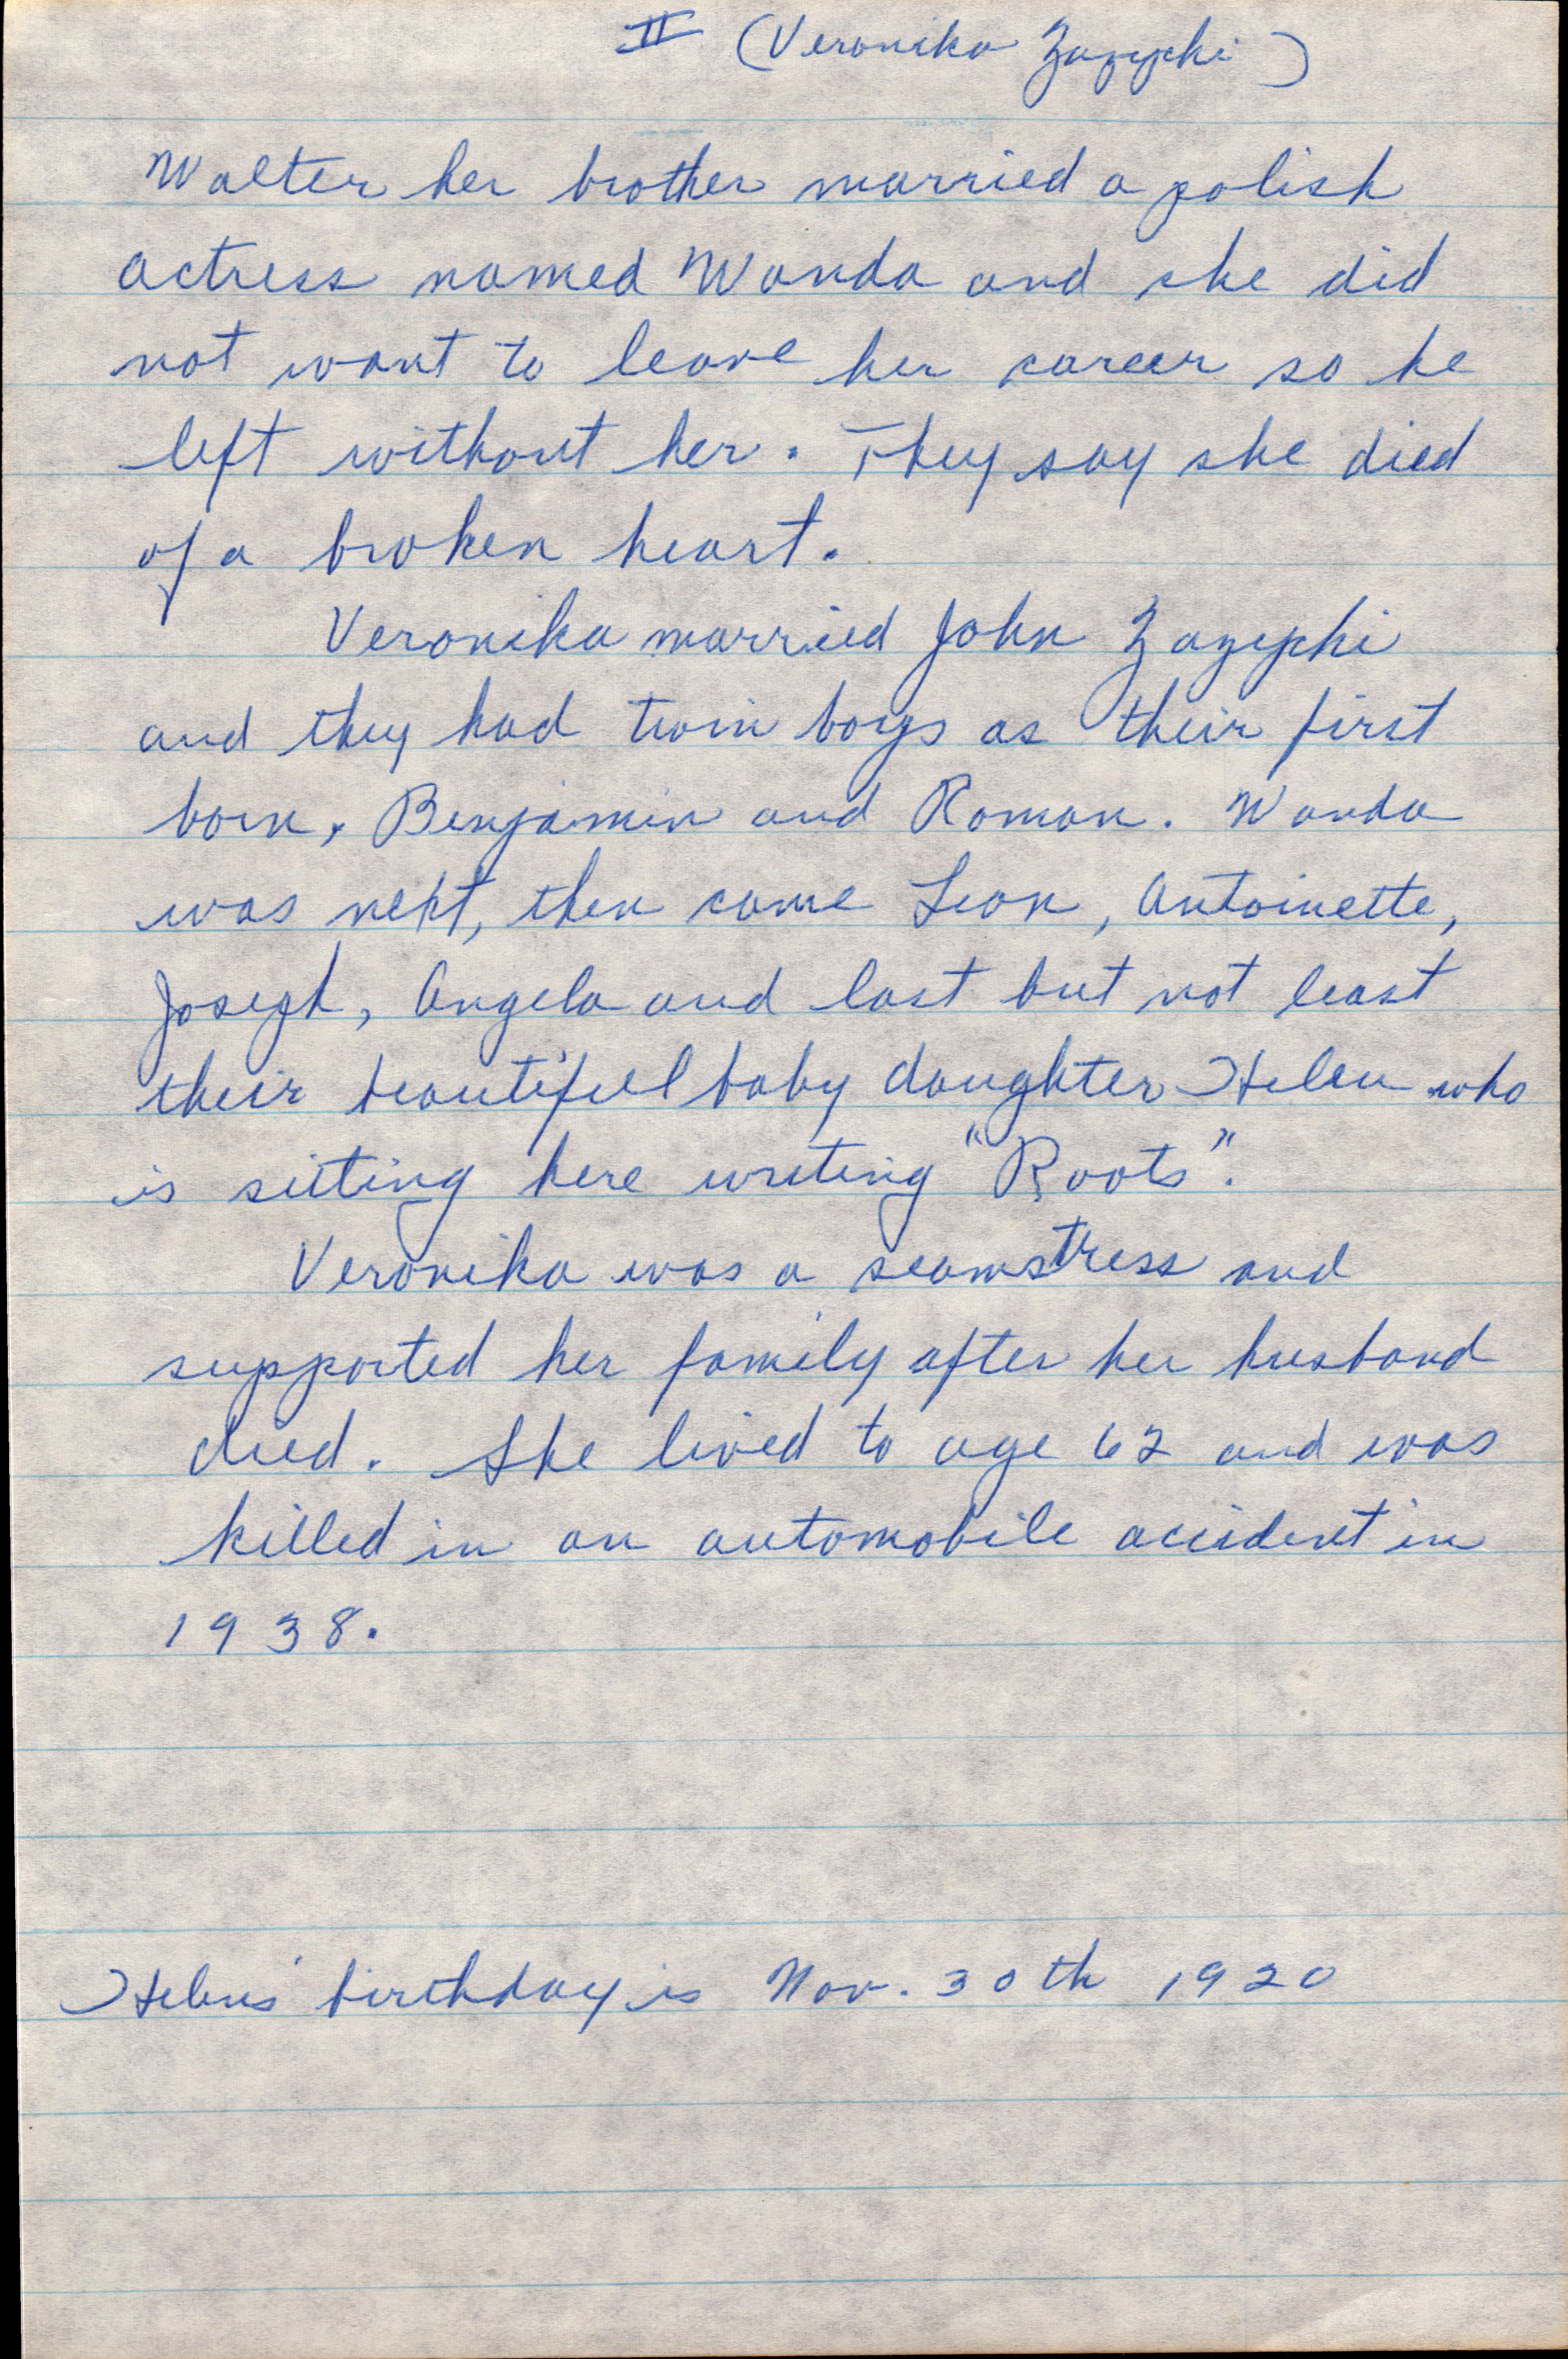 Letter from Grandma Helen 1977 page 9